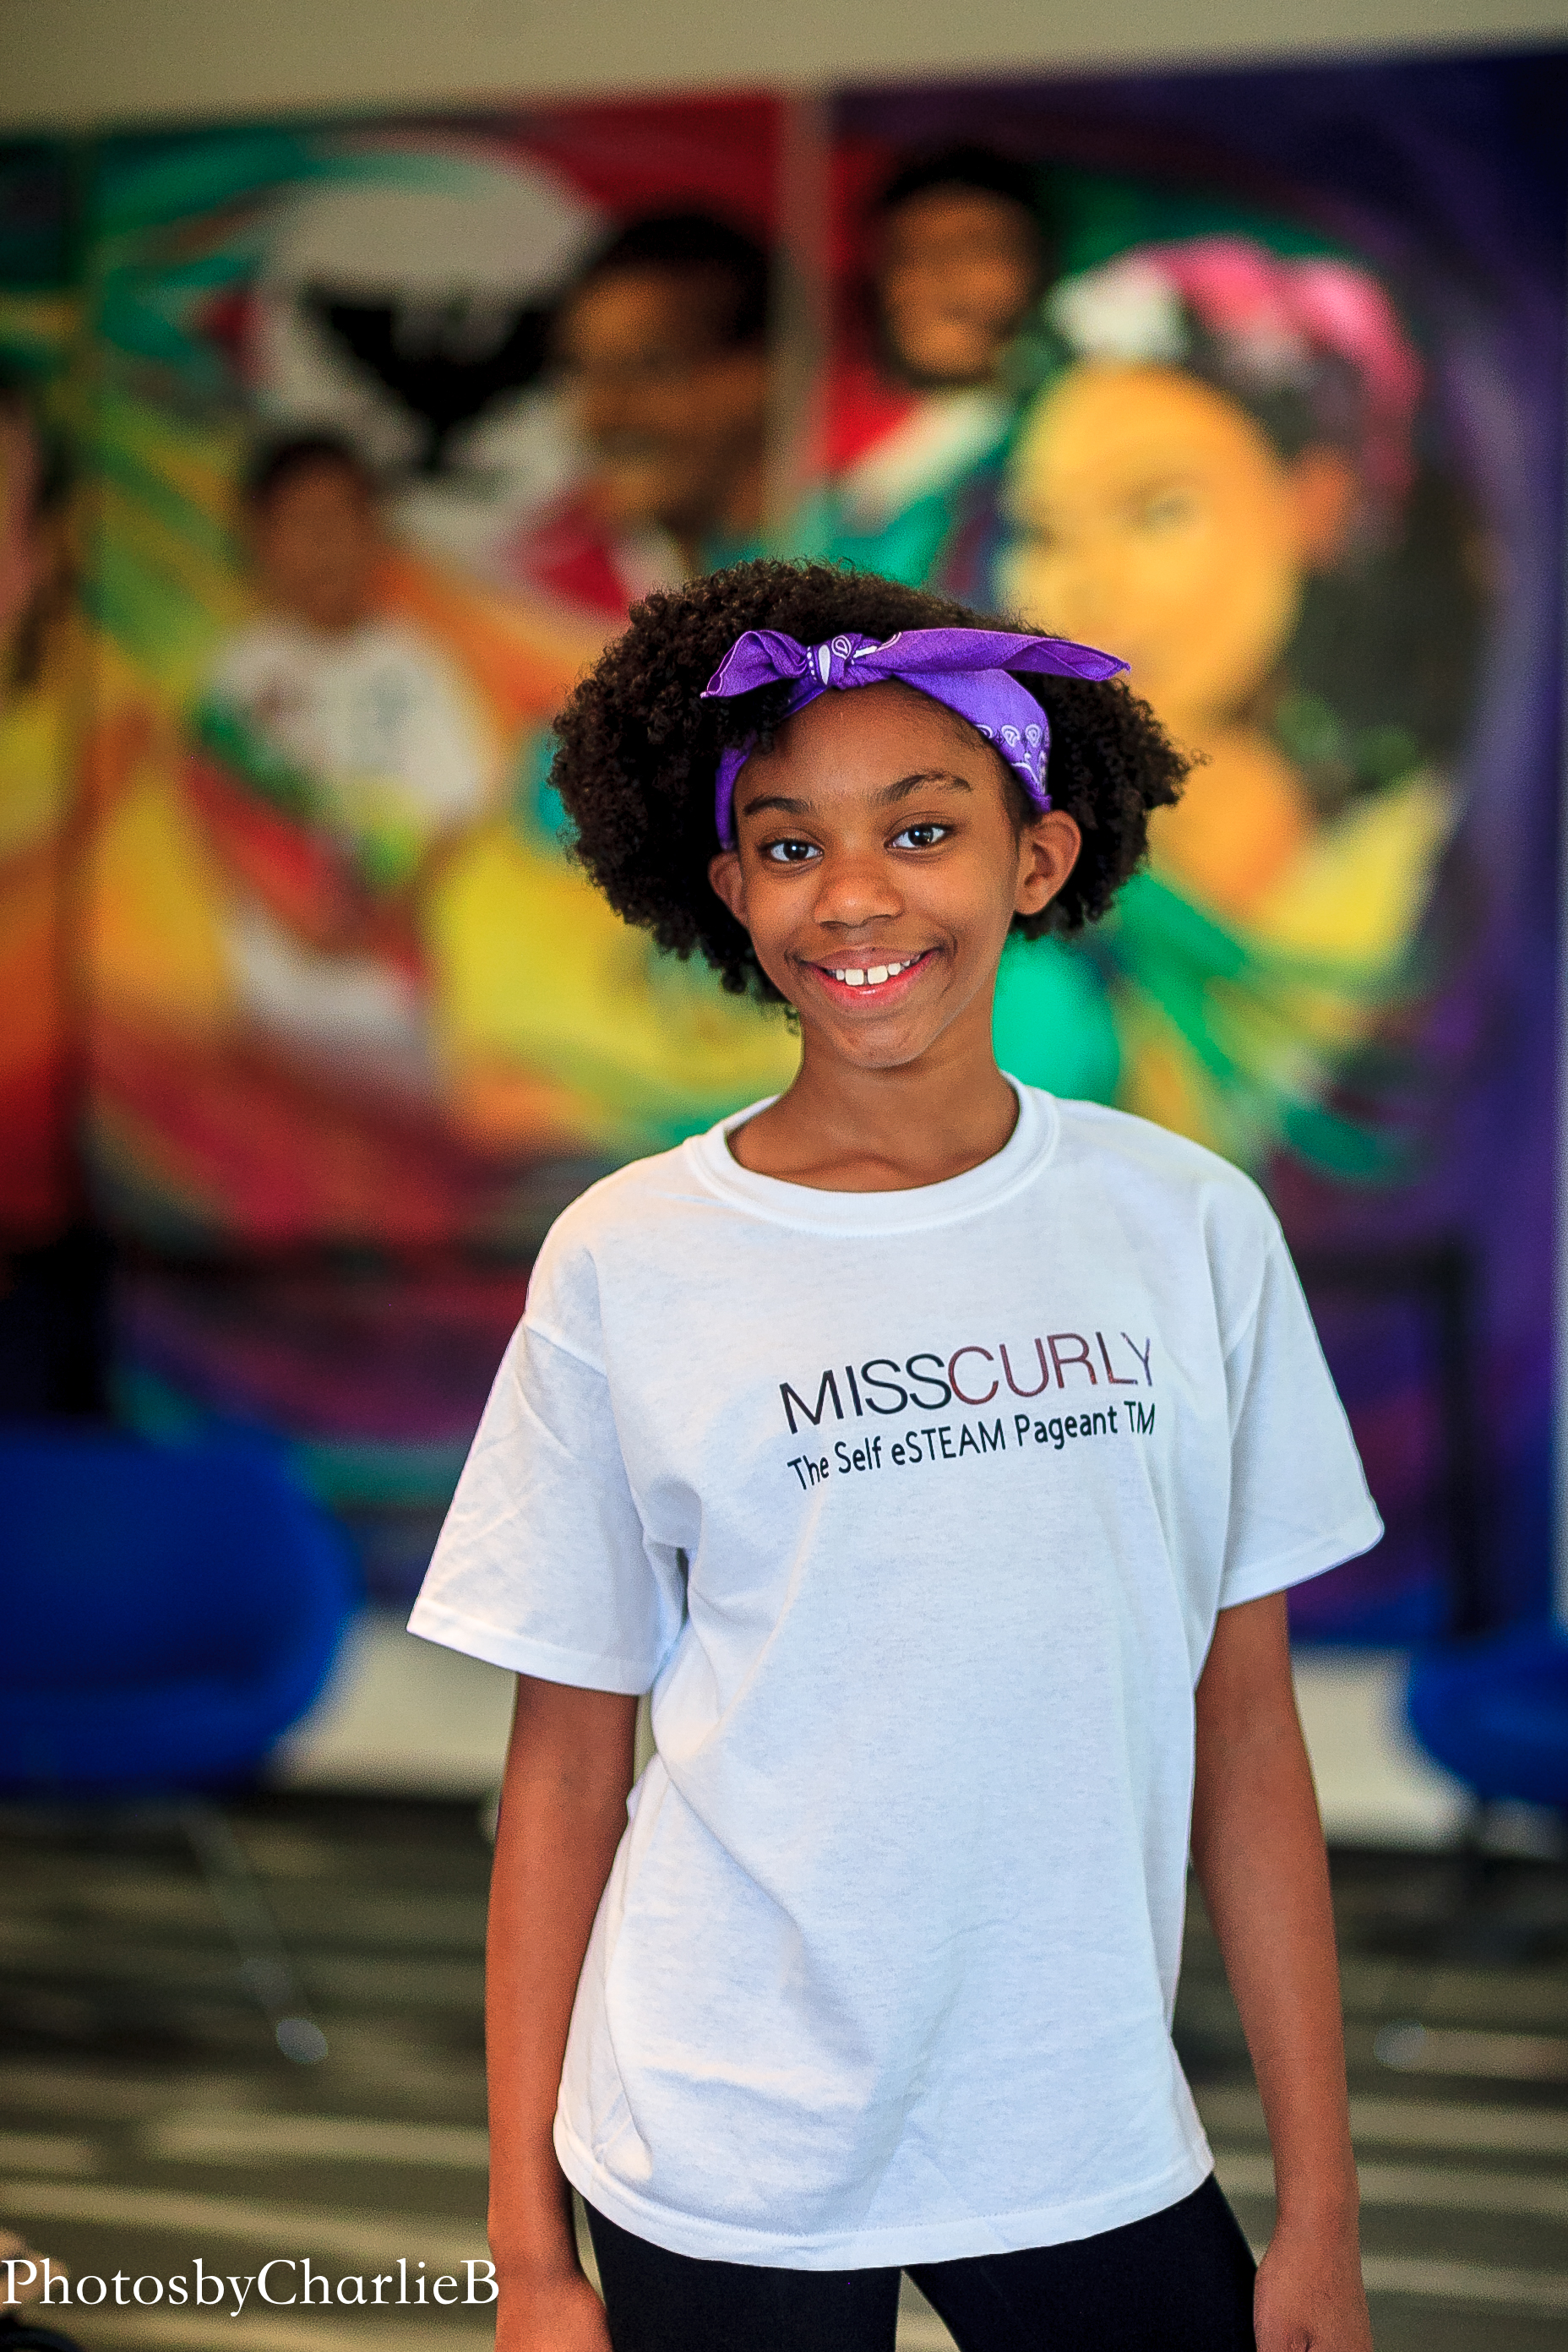 2018 Miss Curly Self eSTEAM Pageant, Denver, CO - Curls On